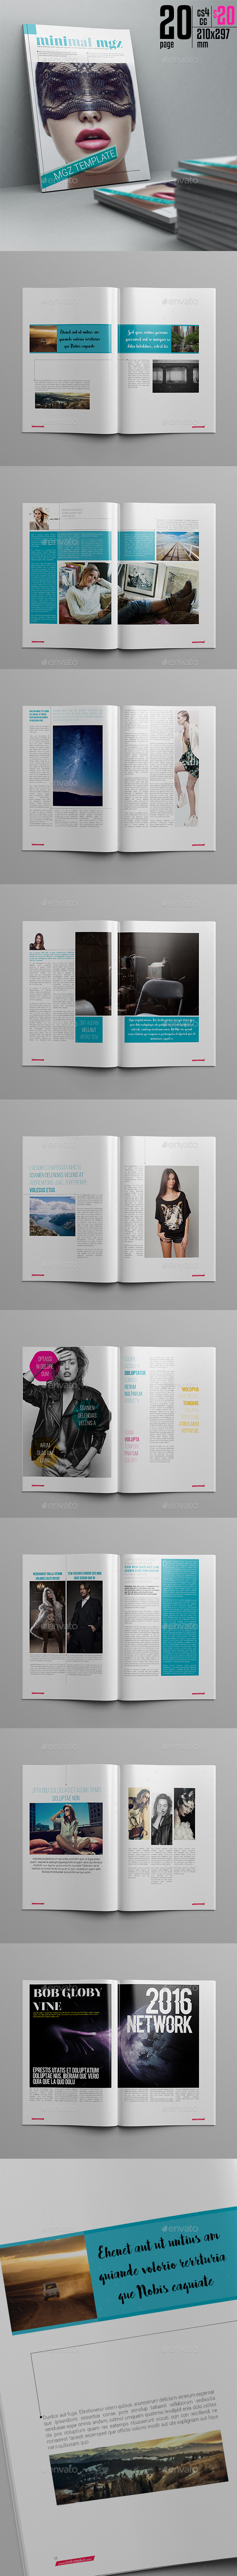 Minimal Magazine Template 20 Page - Magazines Print Templates